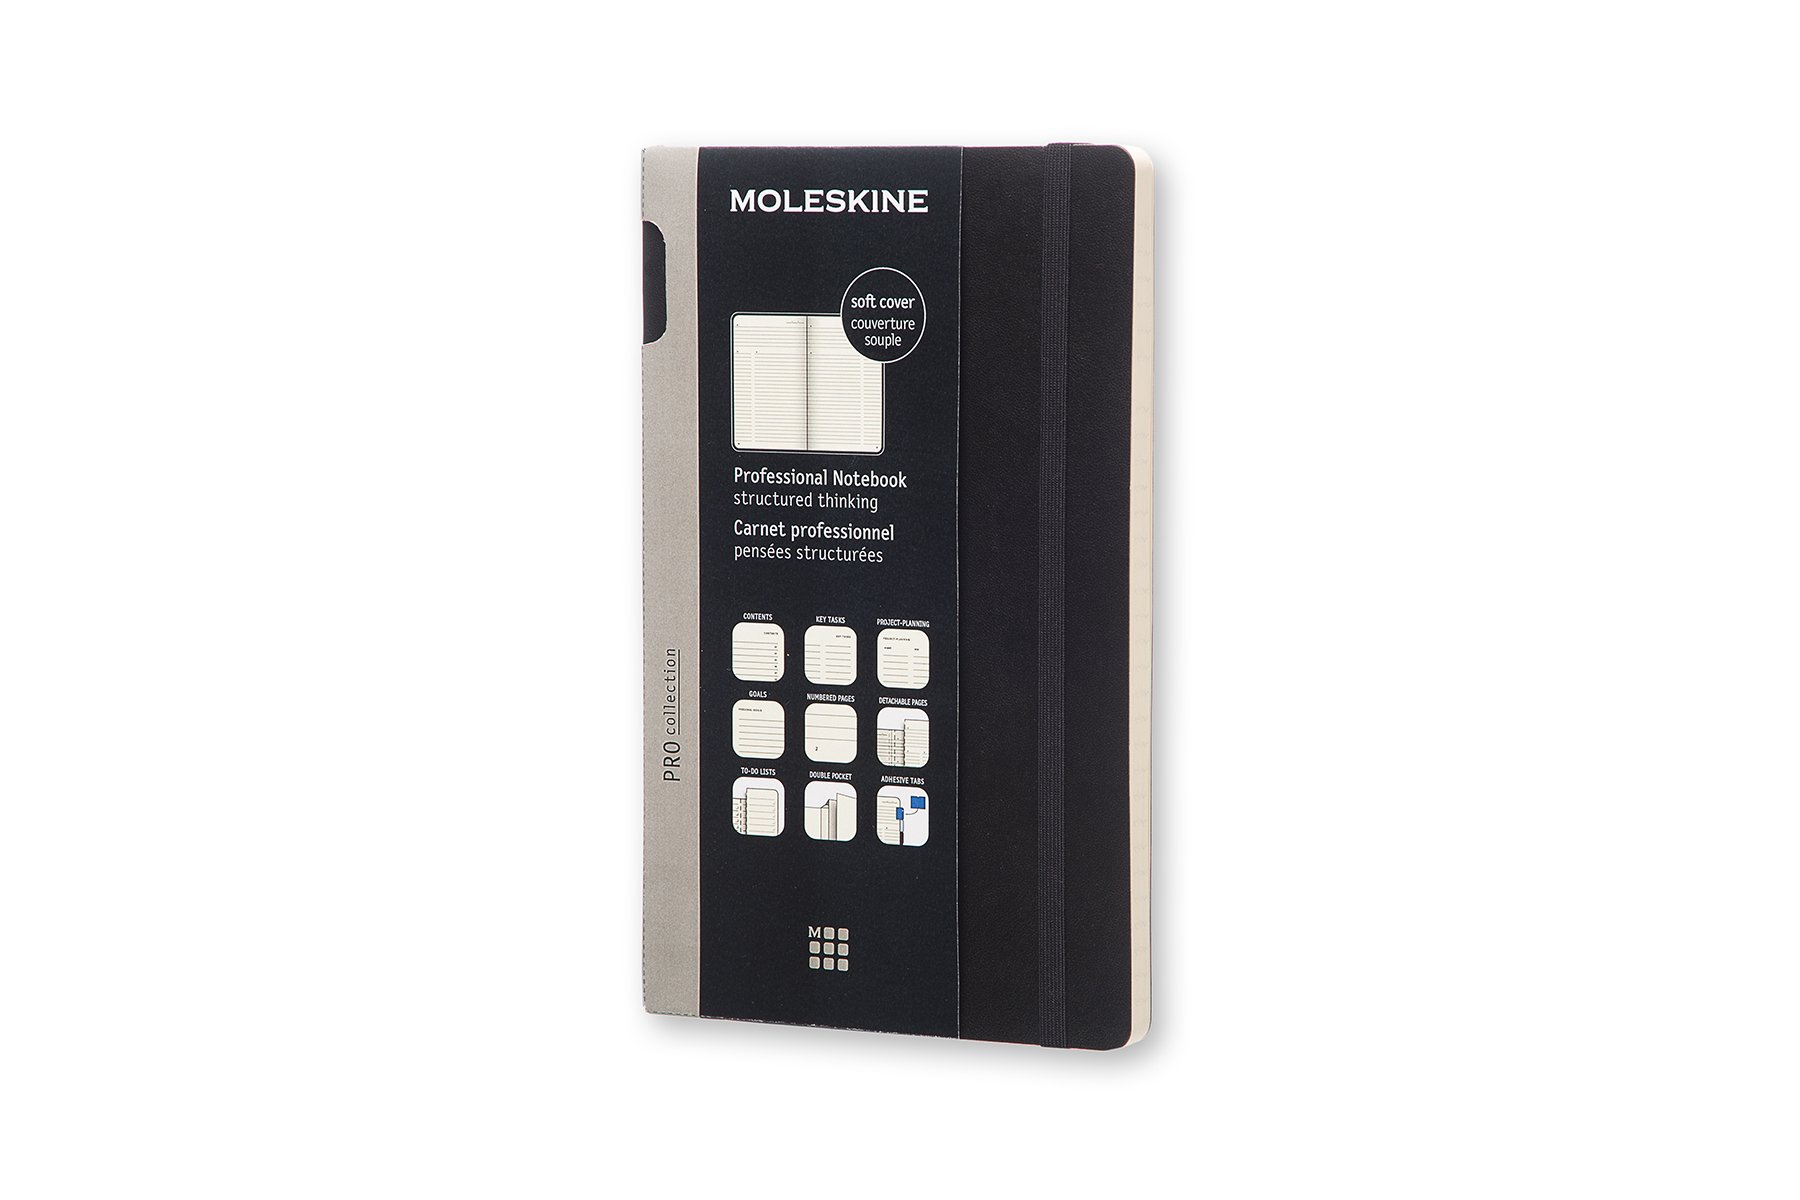 Moleskine Pro Soft Cover Notebook, Professional, Large (5 x.